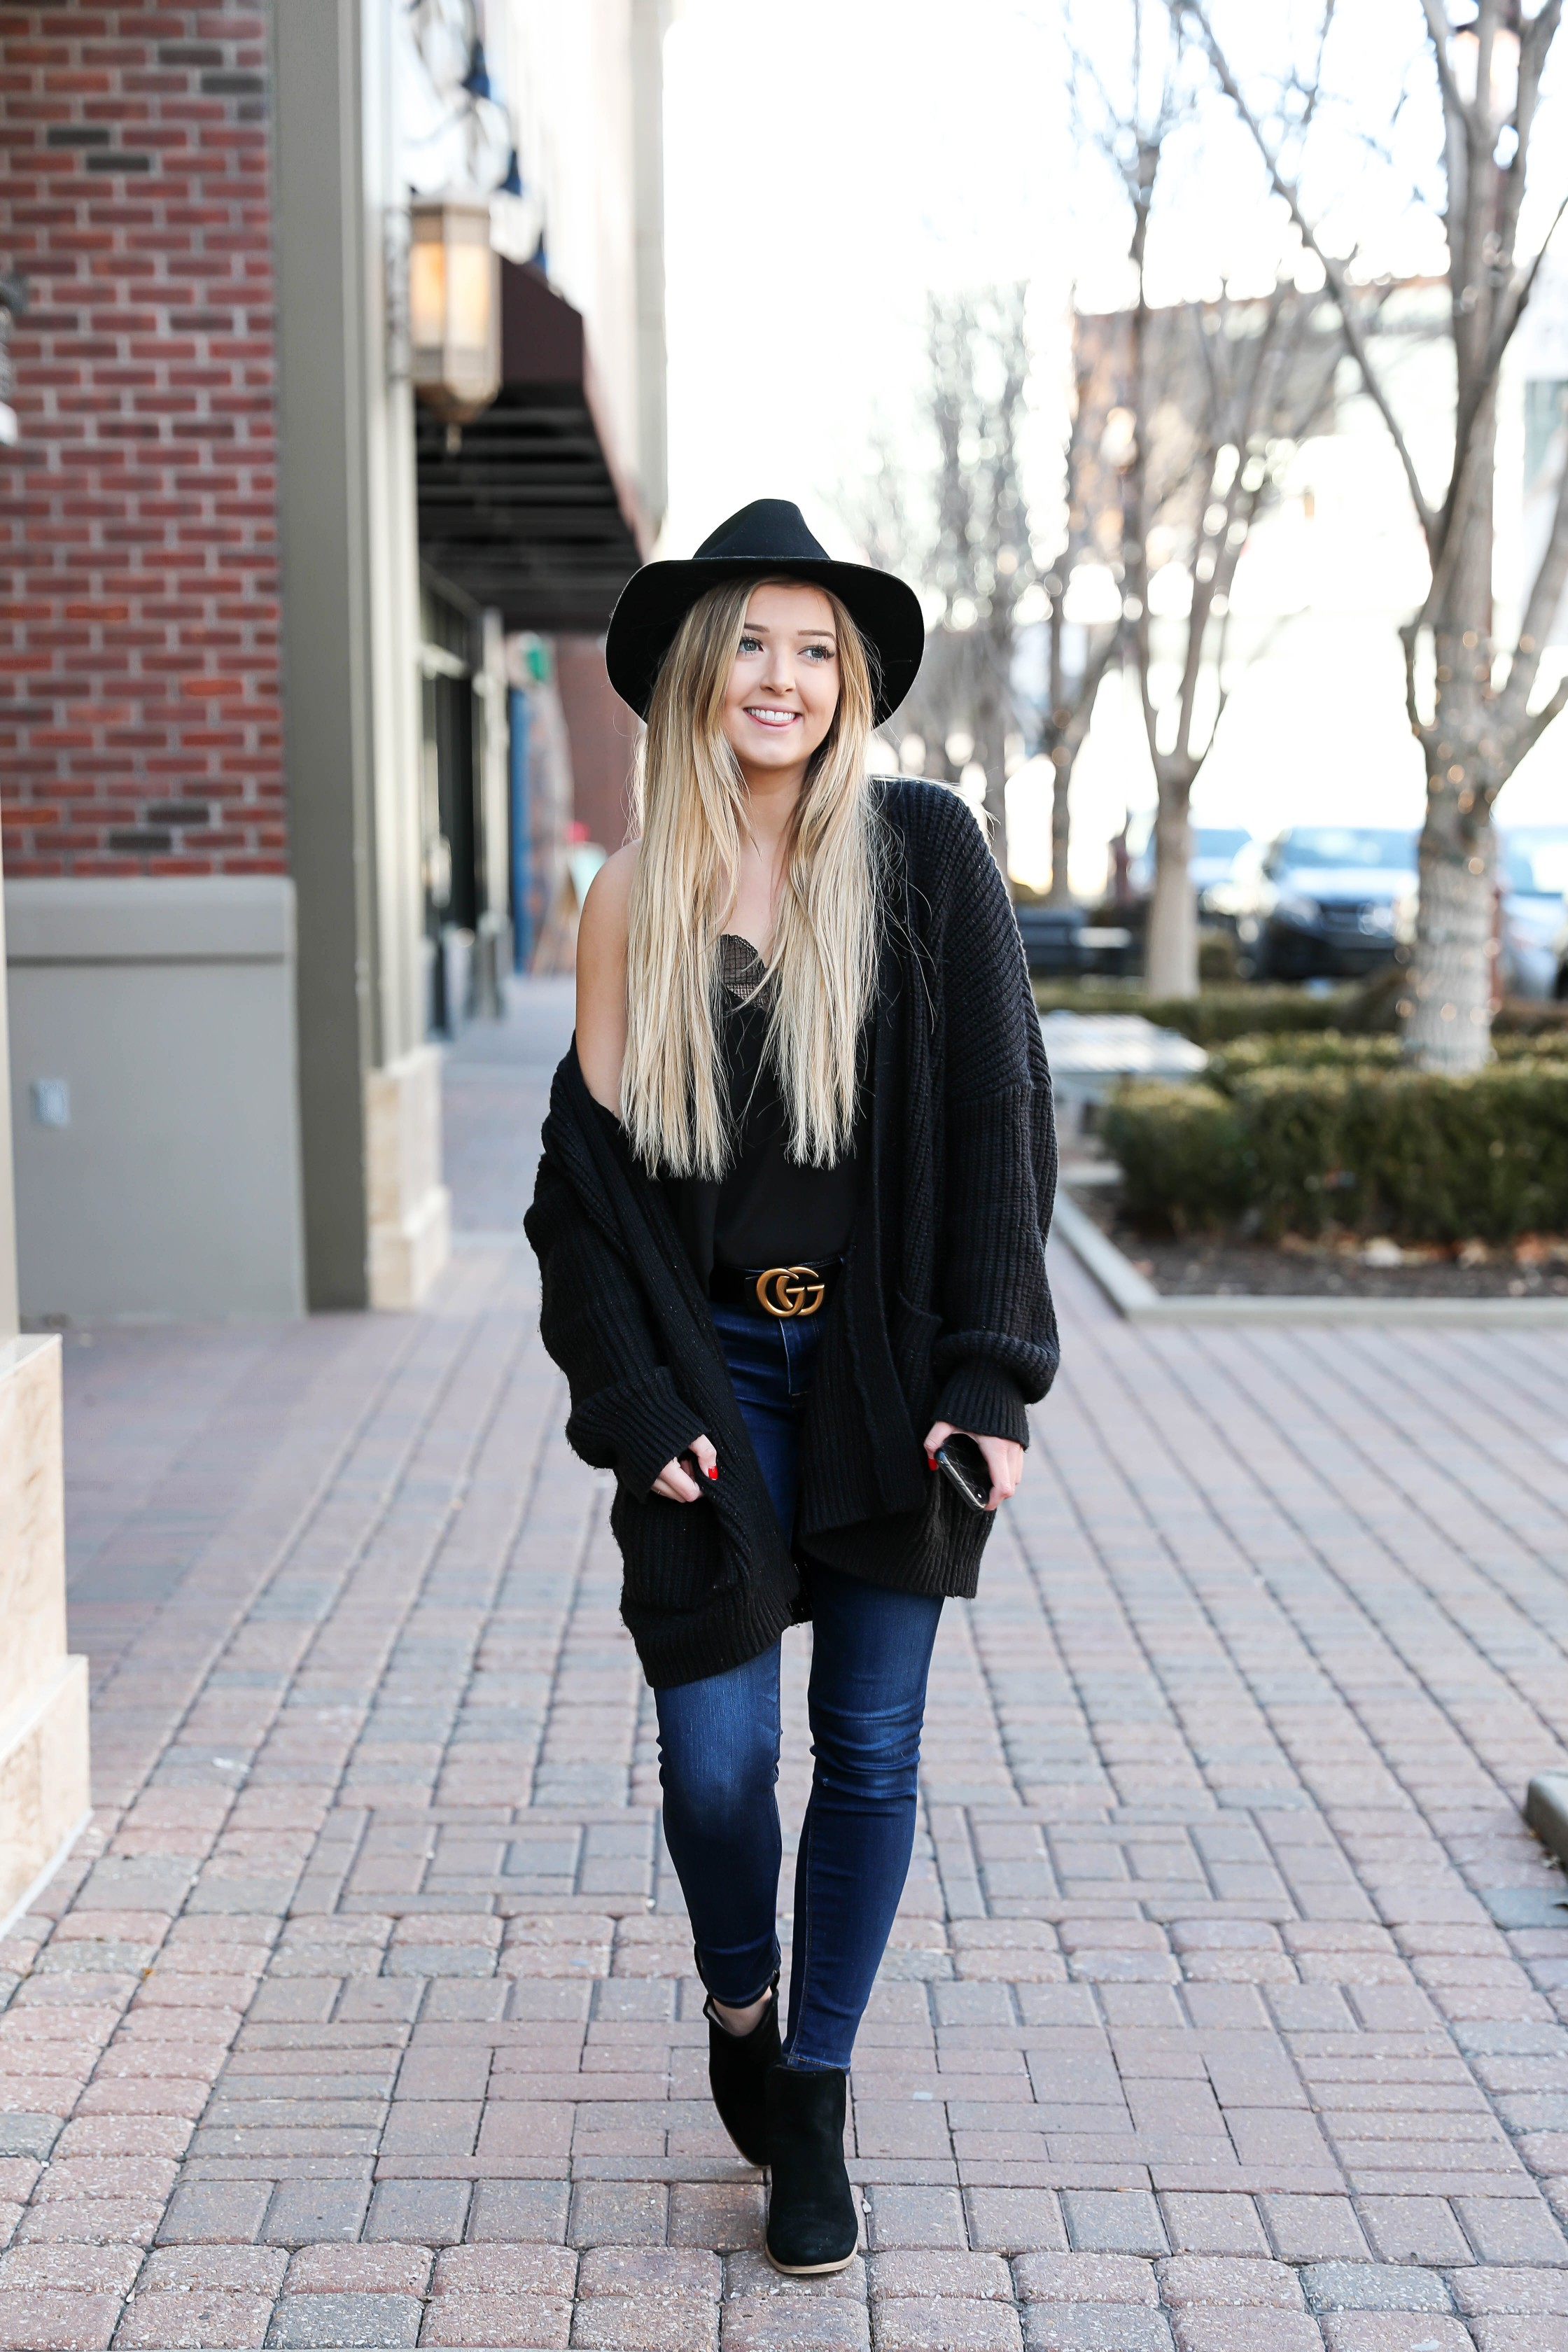 How I plan my day on the iPhone iCalendar app! Start the new year off right with these organization tips! Also checkout this cute all black outfit with this cute gucci belt and black felt hat! Details on fashion blog daily dose of charm by lauren lindmark